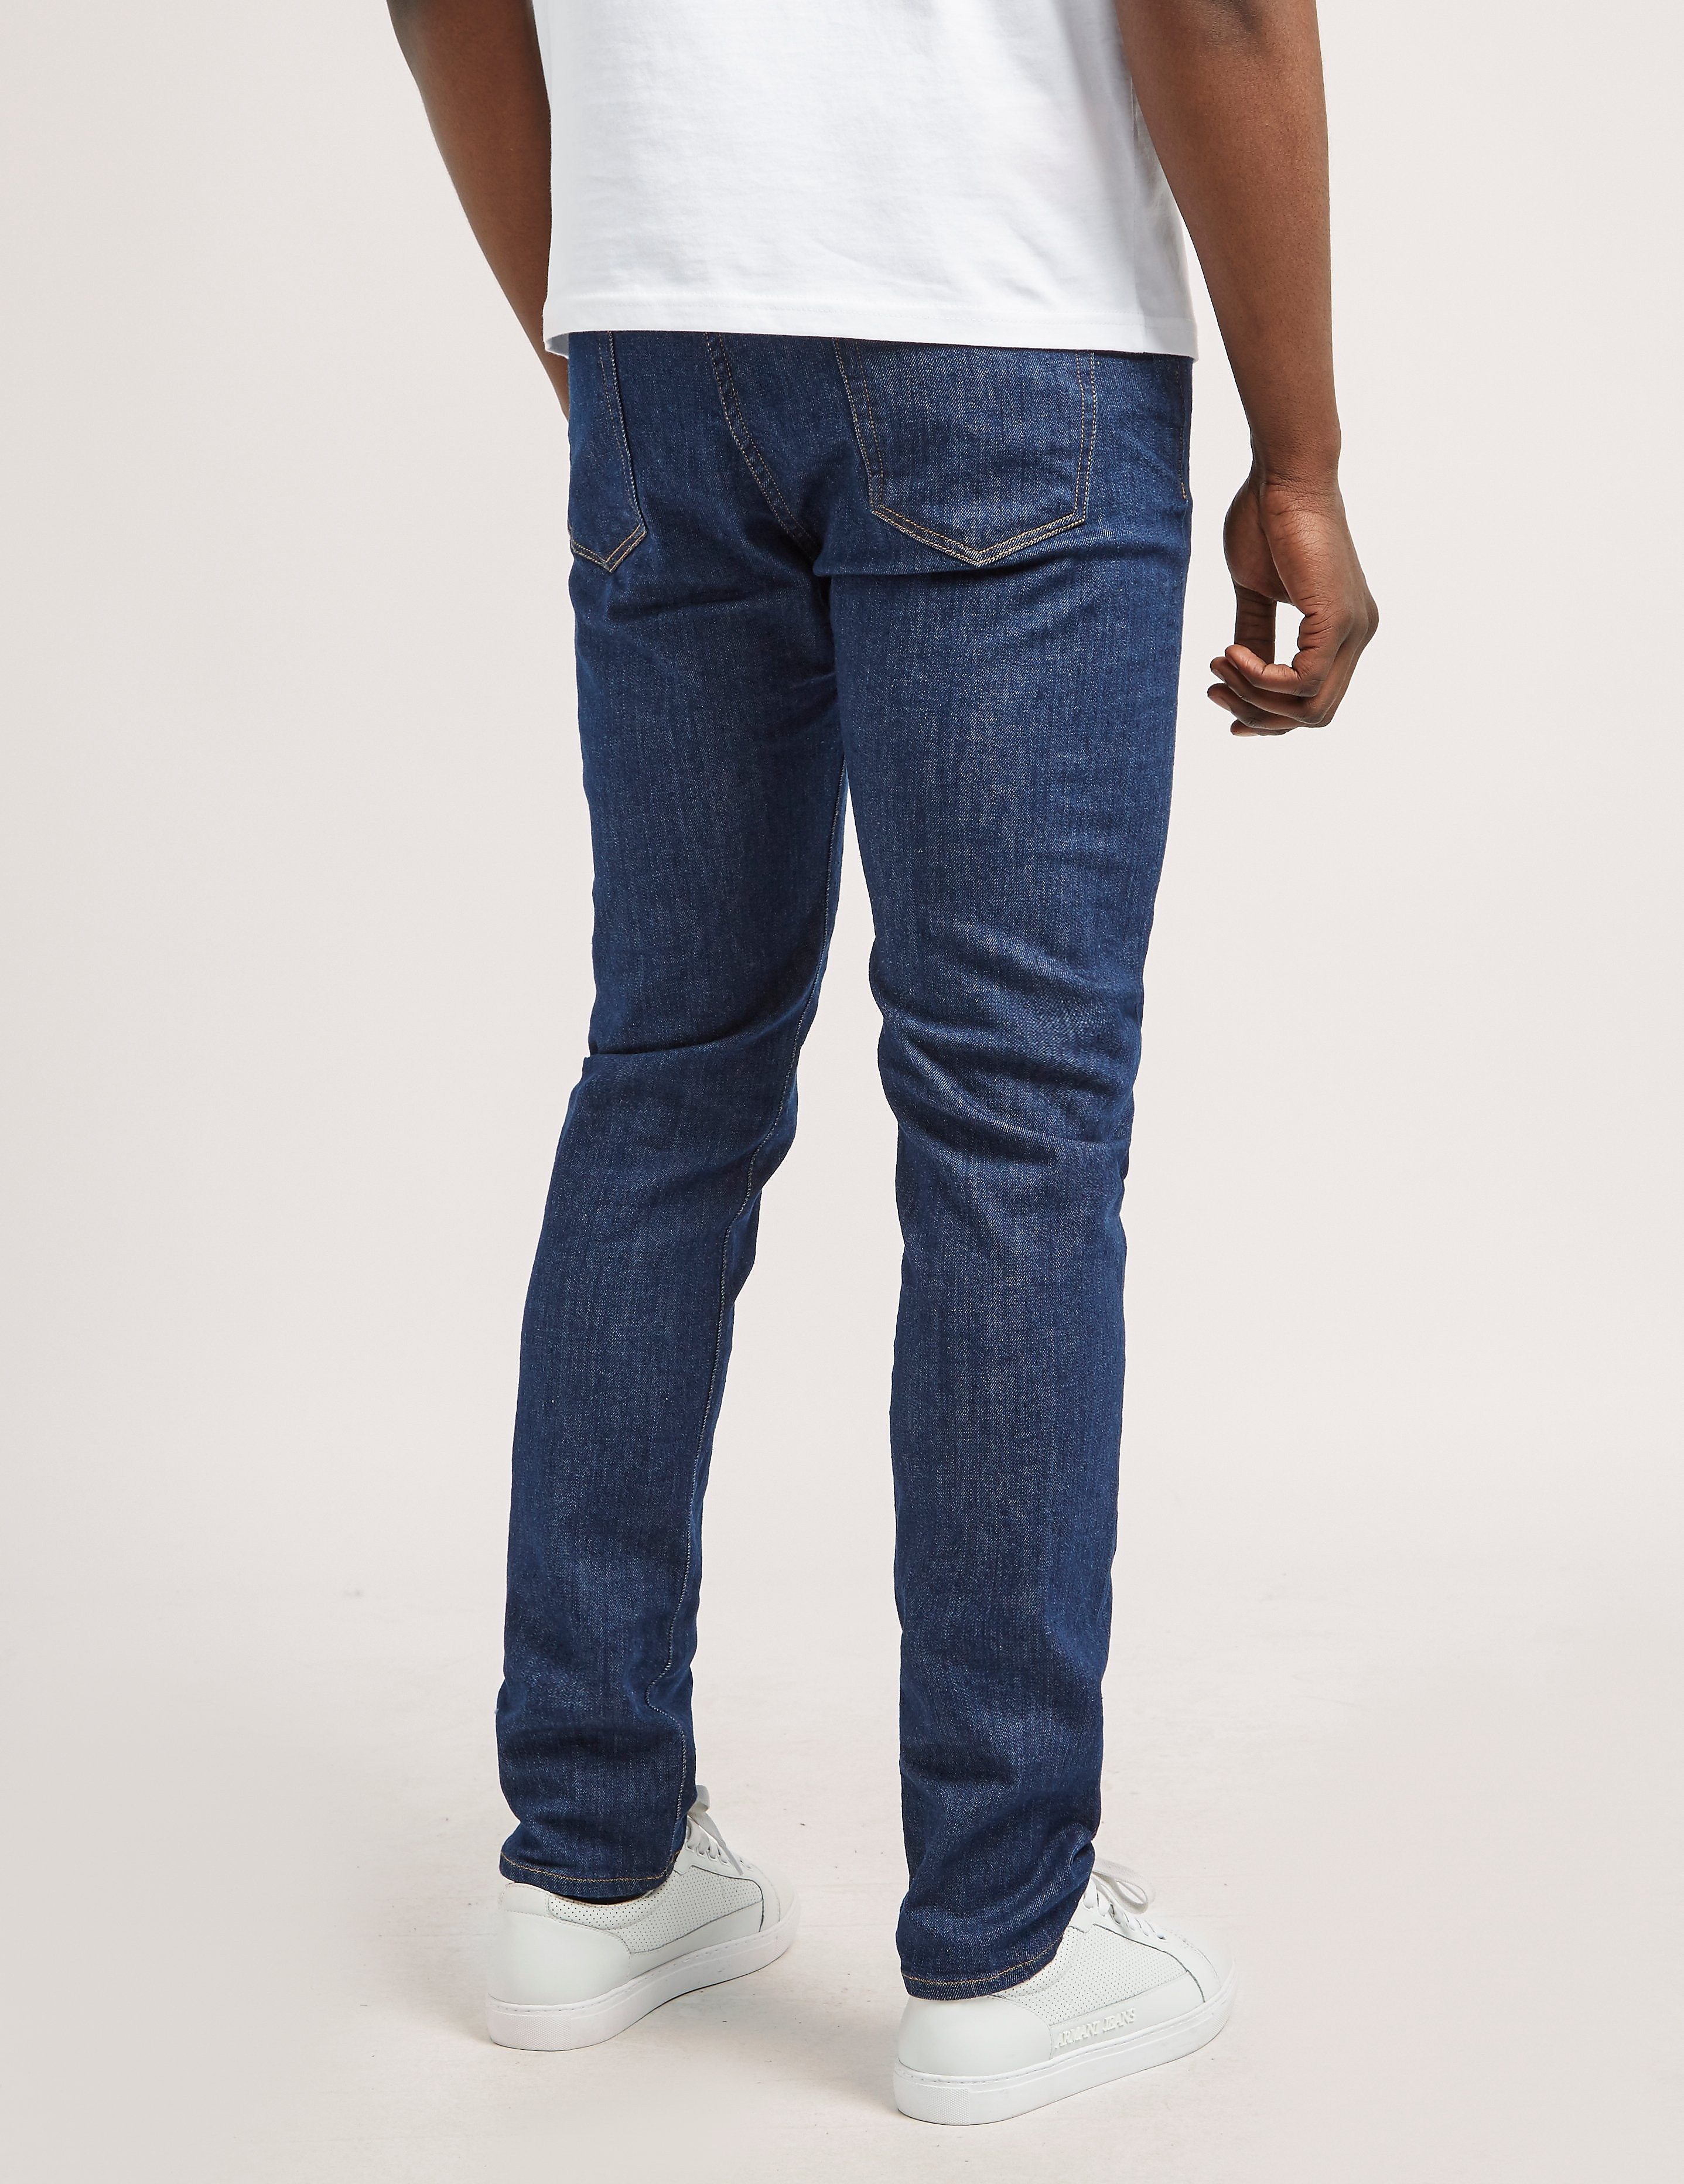 Paul Smith Super Stretch Slim Fit Jeans